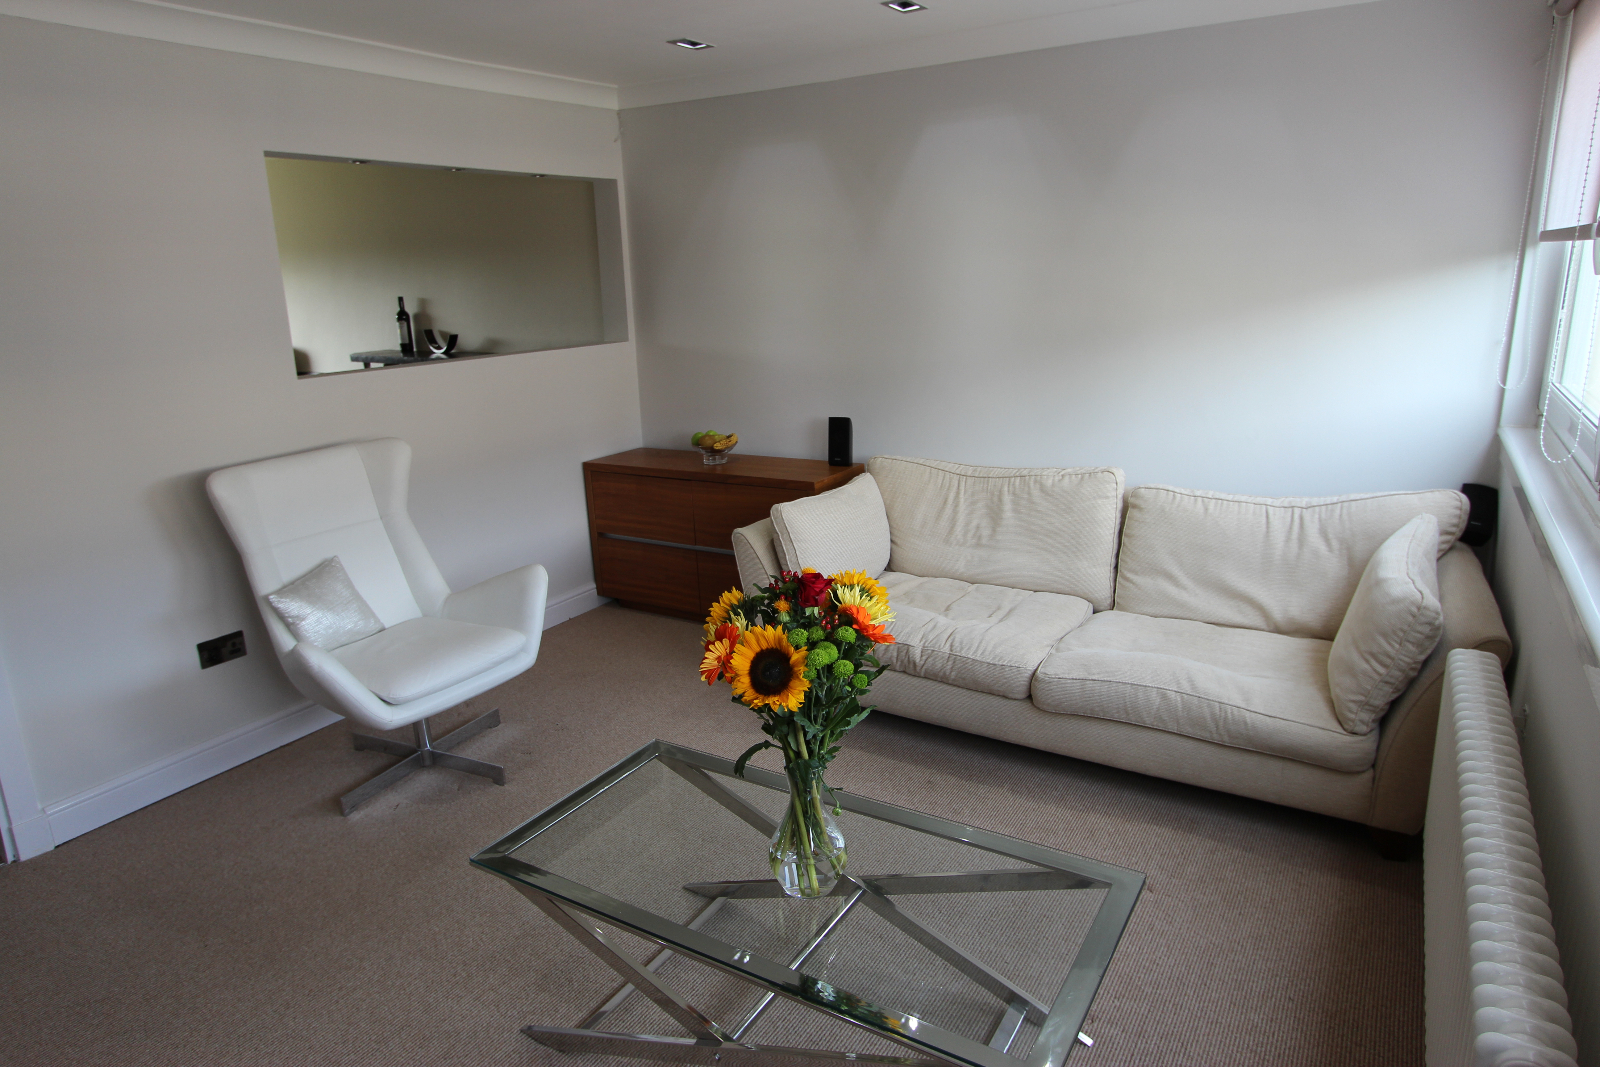 GBP59995 PCM Offers Over